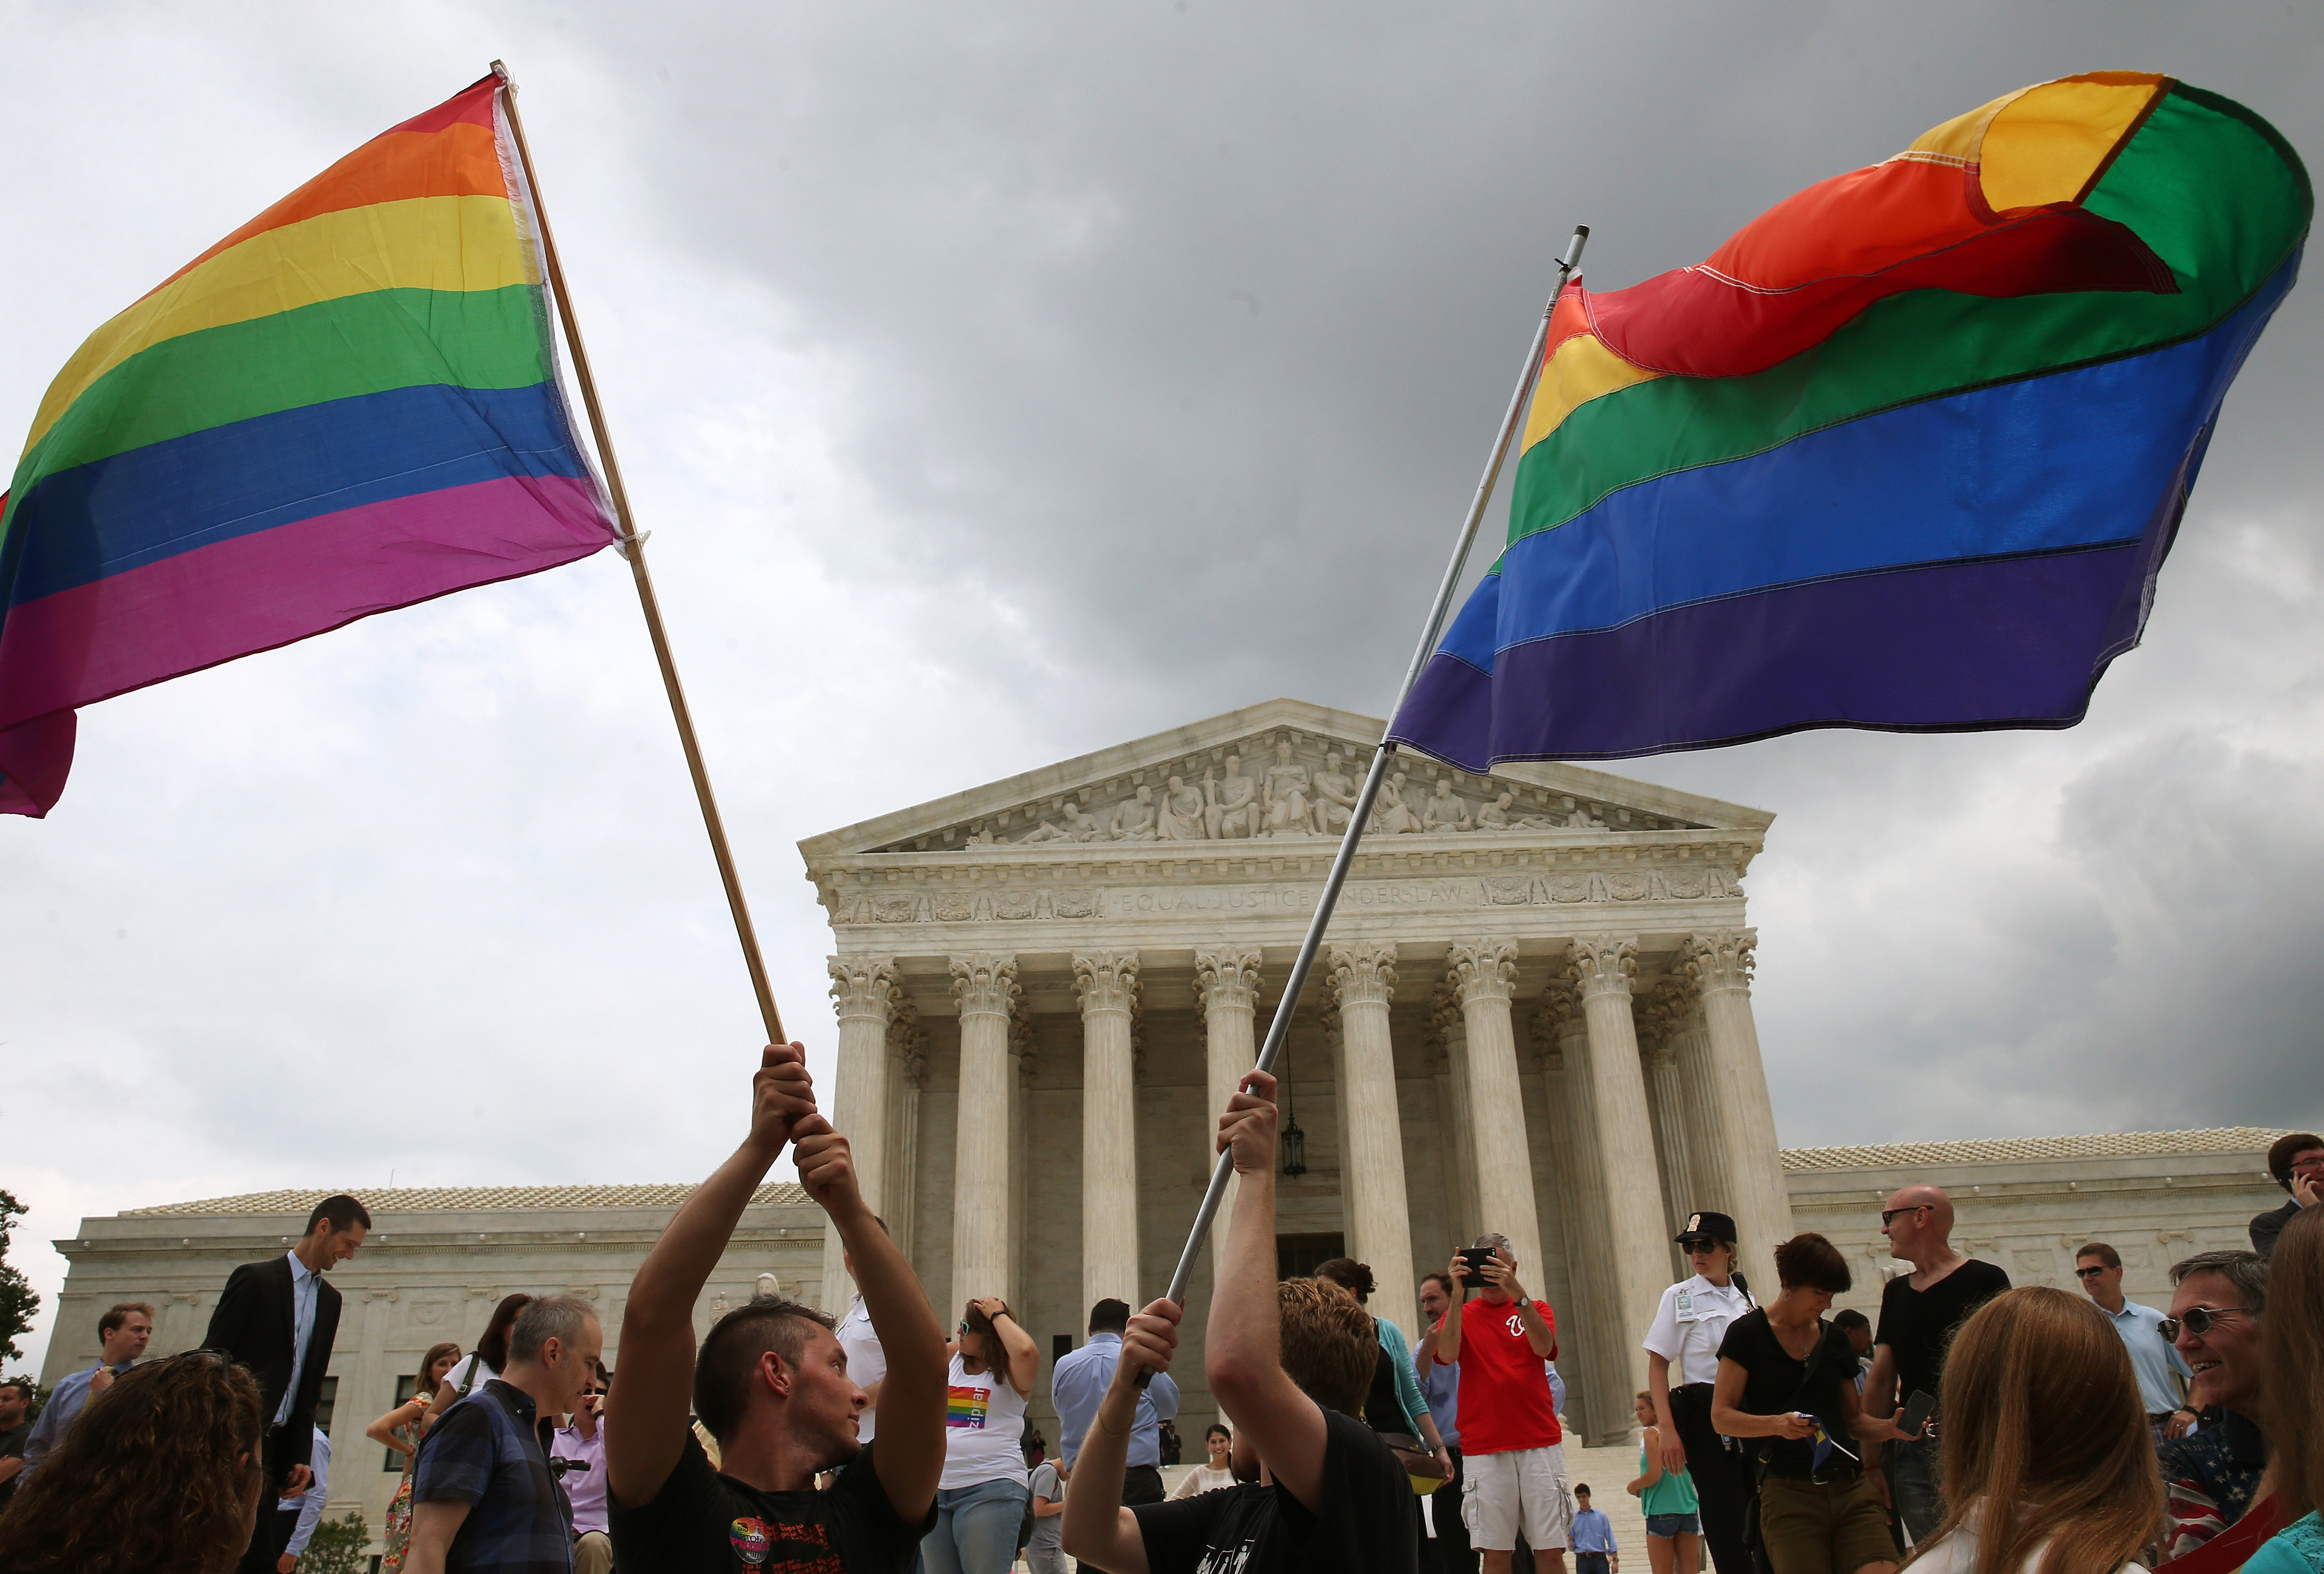 People celebrate in front of the U.S. Supreme Court after the ruling in favor of same-sex marriage June 26, 2015 in Washington, DC. The high court ruled that same-sex couples have the right to marry in all 50 states.  (Photo by Mark Wilson/Getty Images)